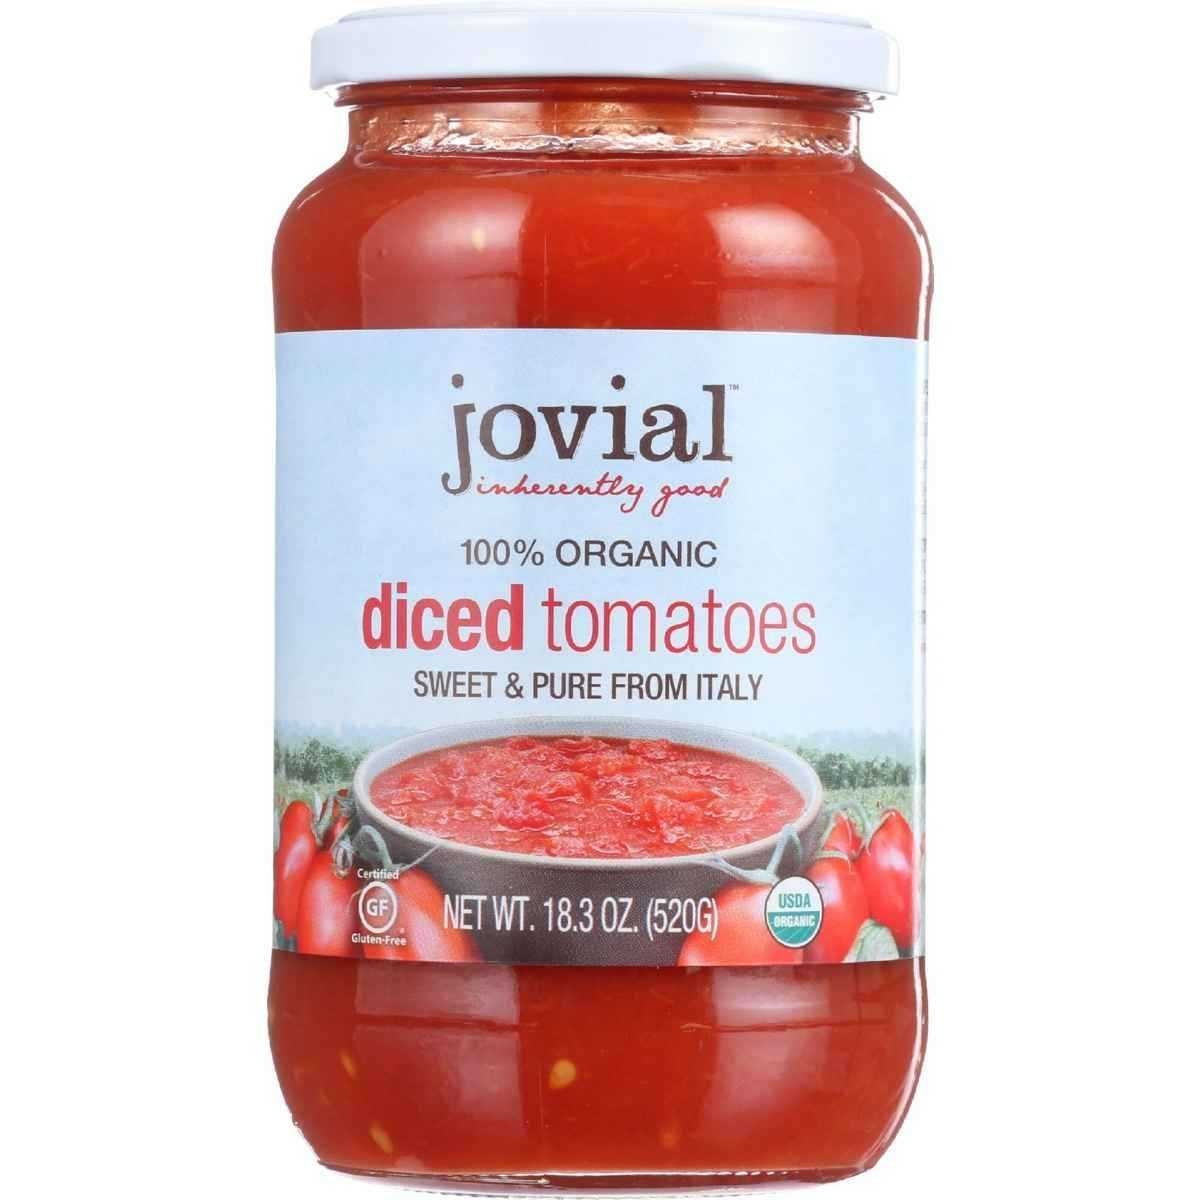 Jovial Organic Diced Tomatoes - 18.3 oz - 6 Pack